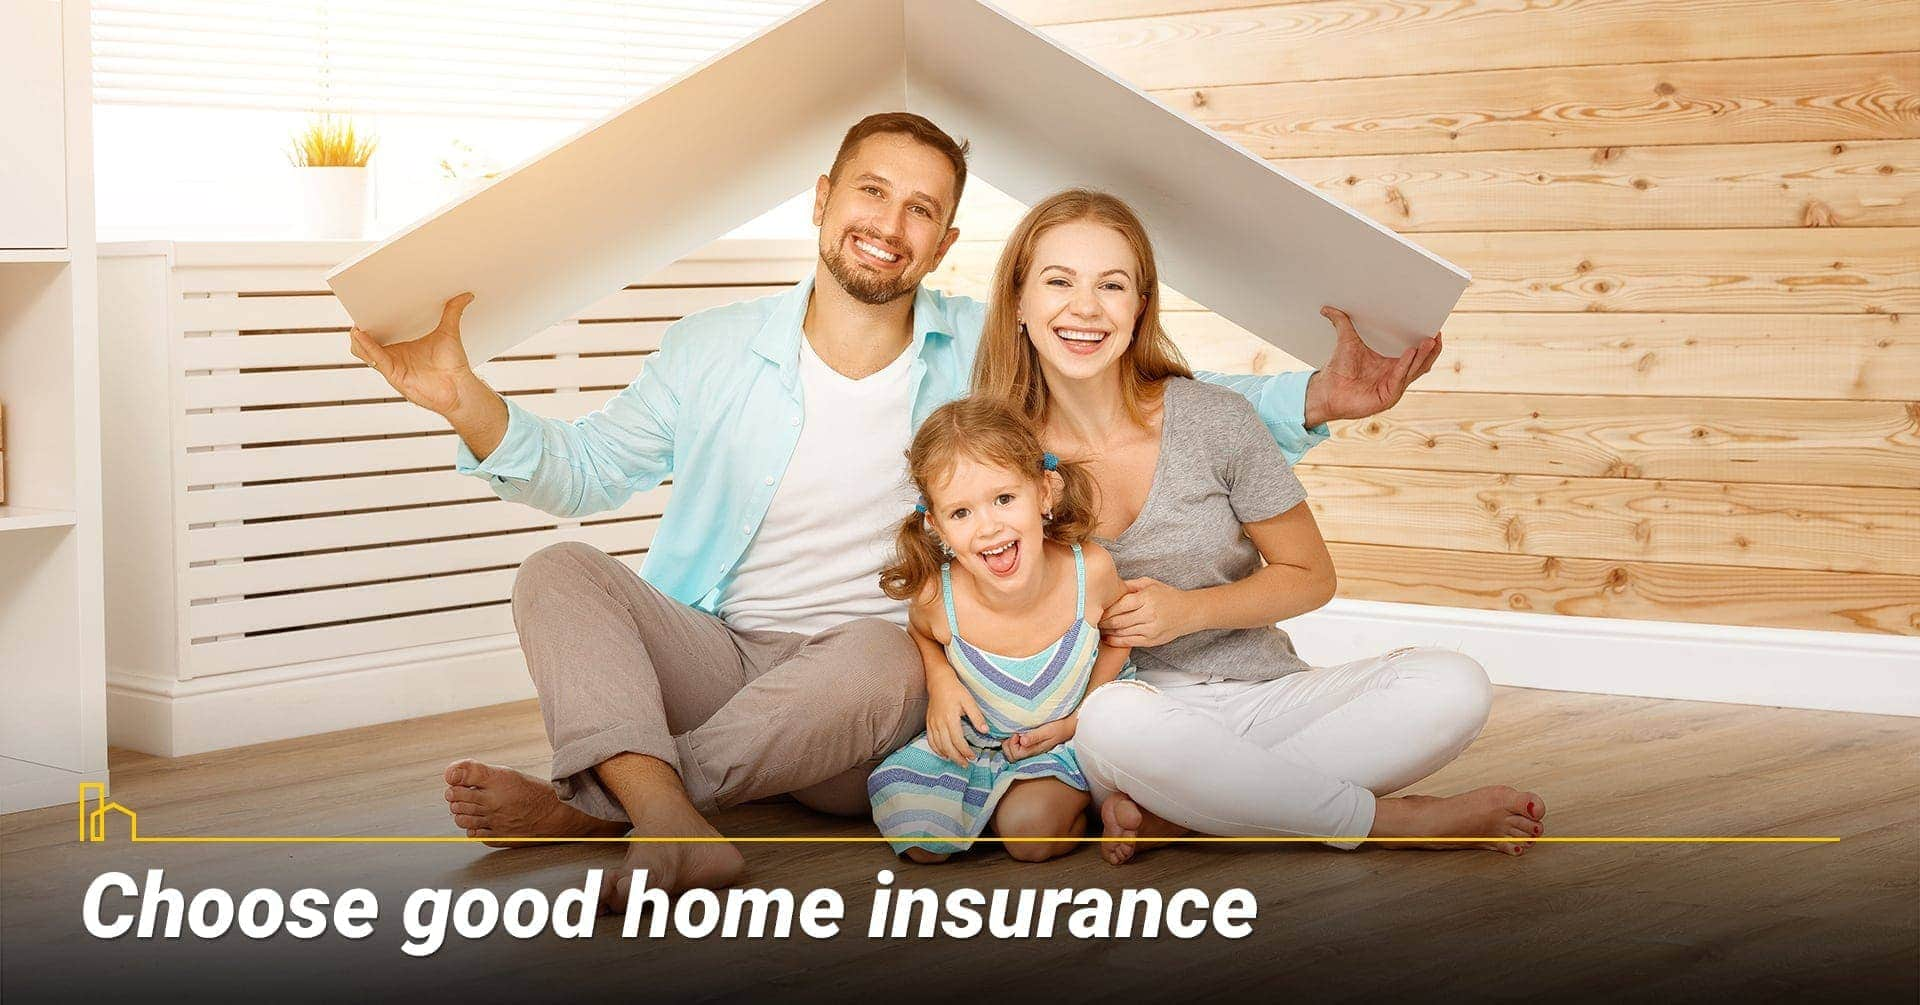 Choose good home insurance, protect your property with proper insurance coverage